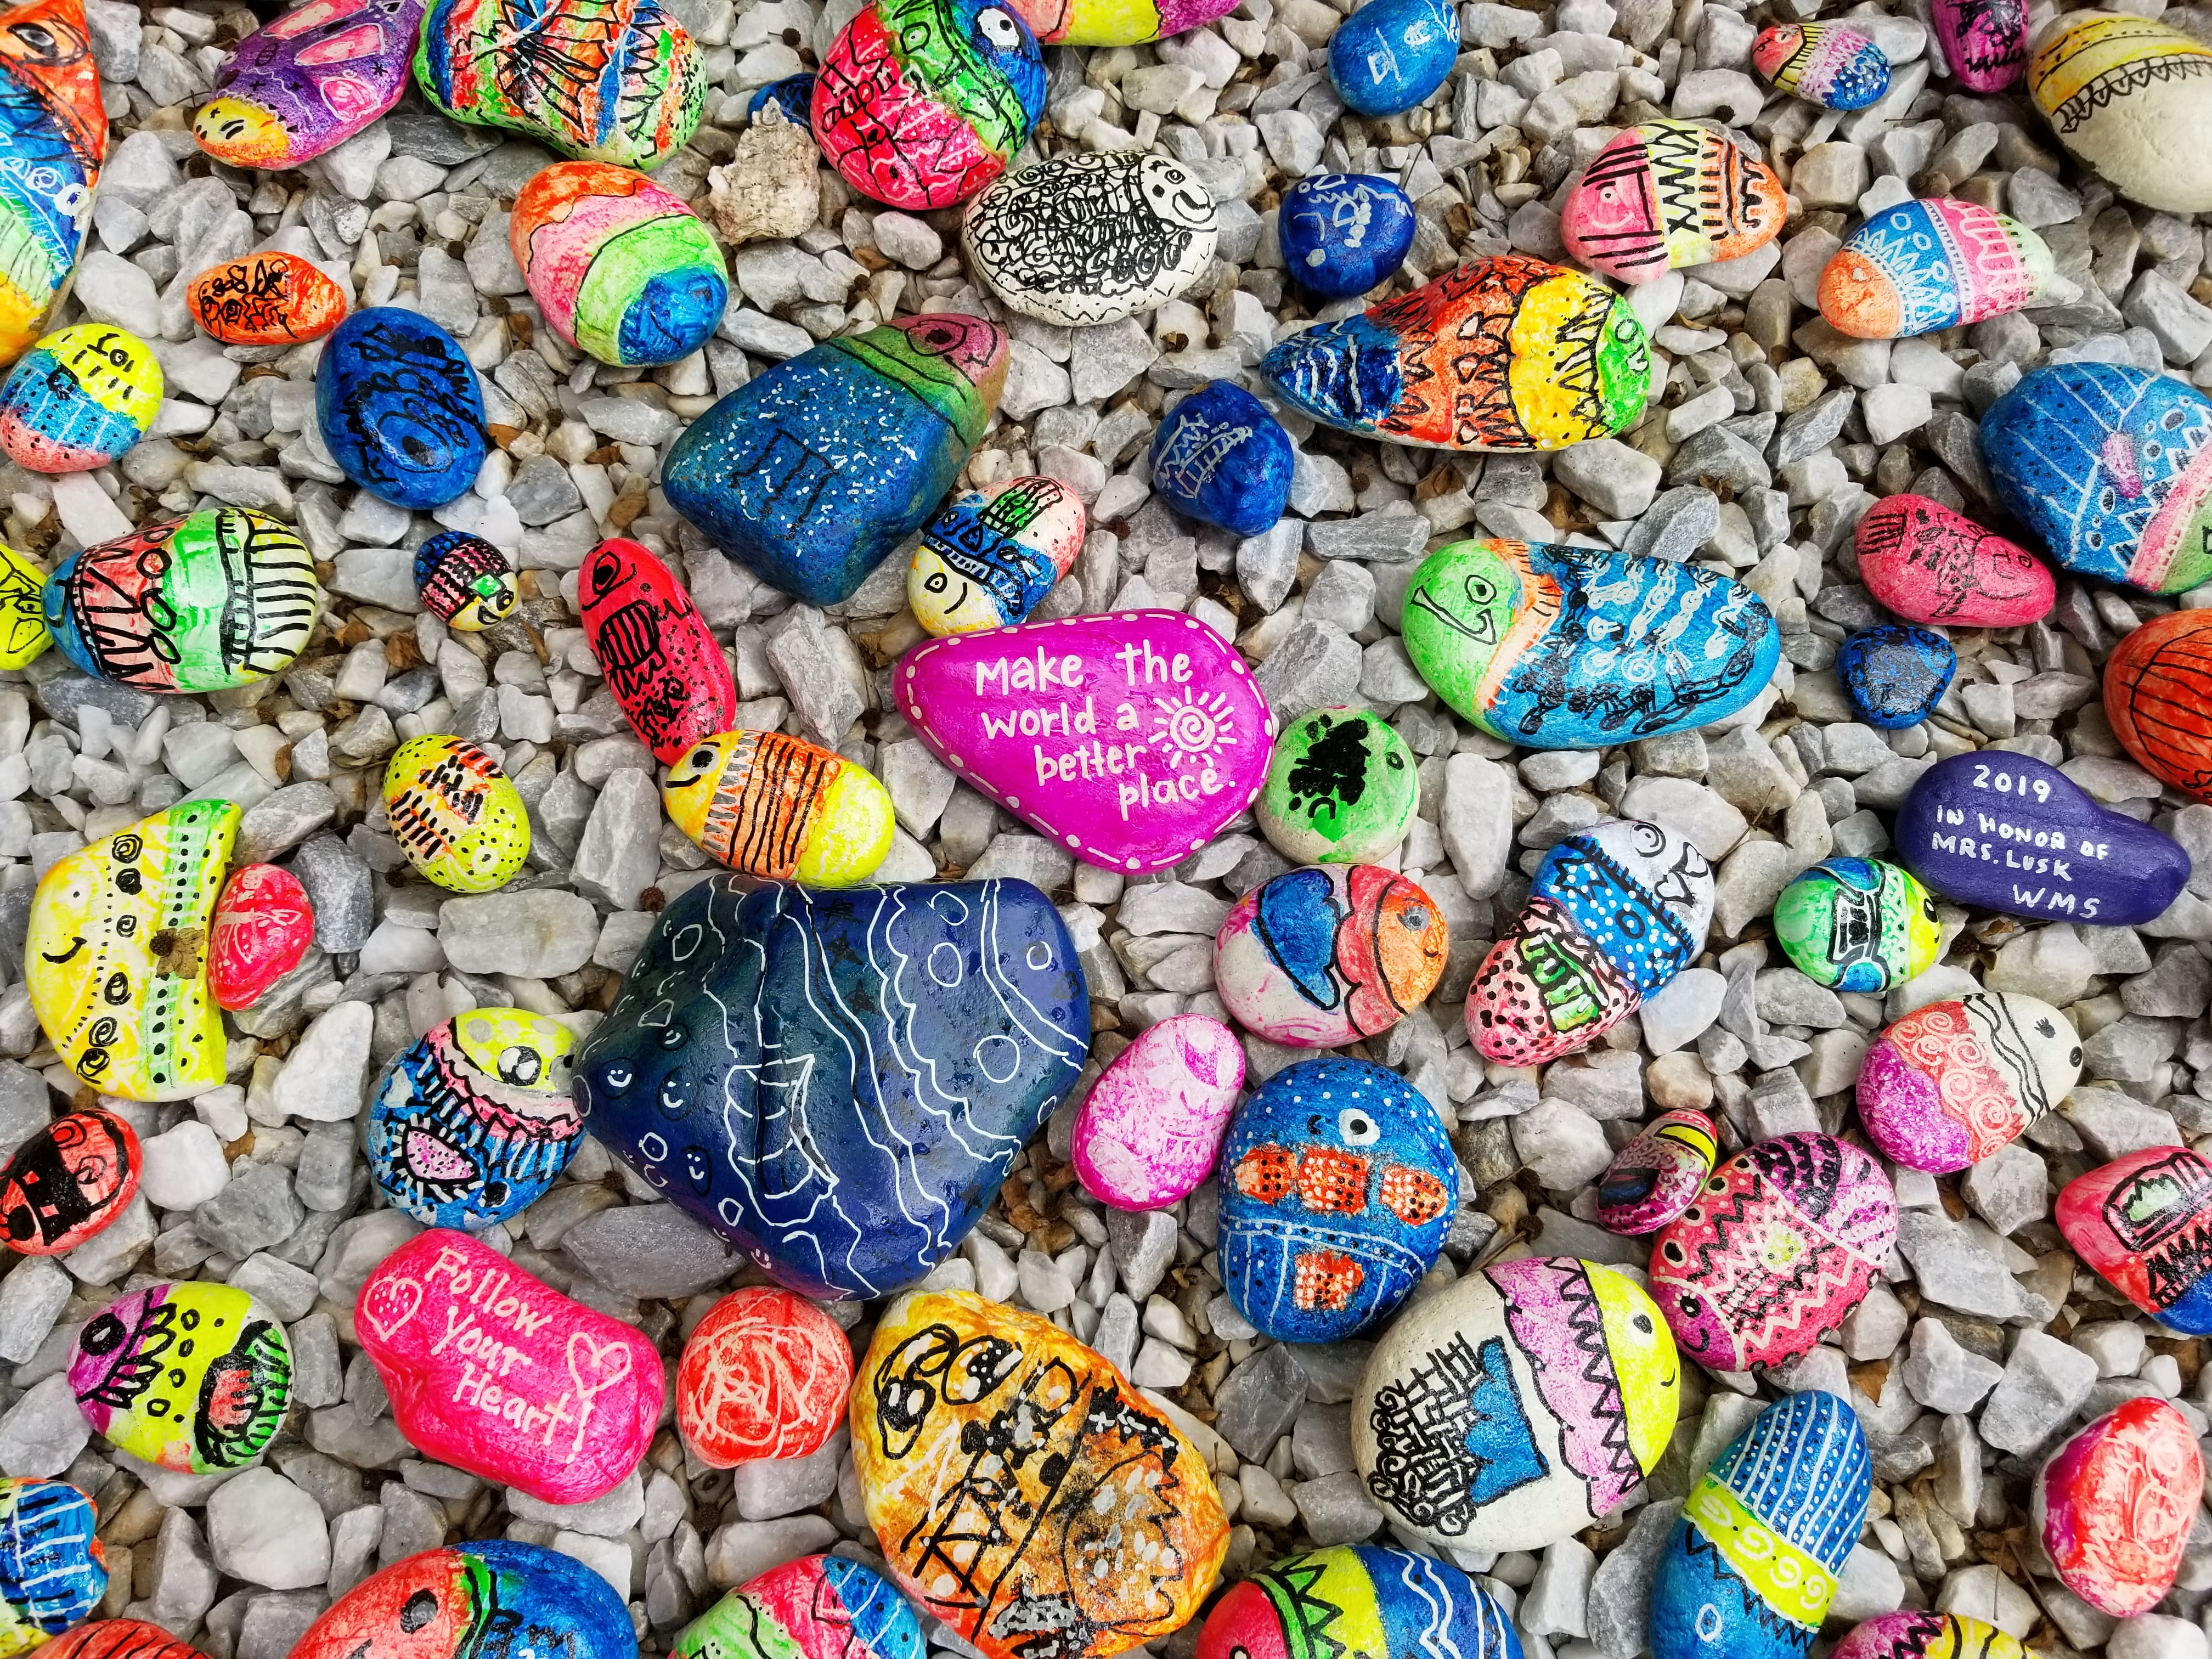 Image of Rocks With Inspirational Messages for Freelancers